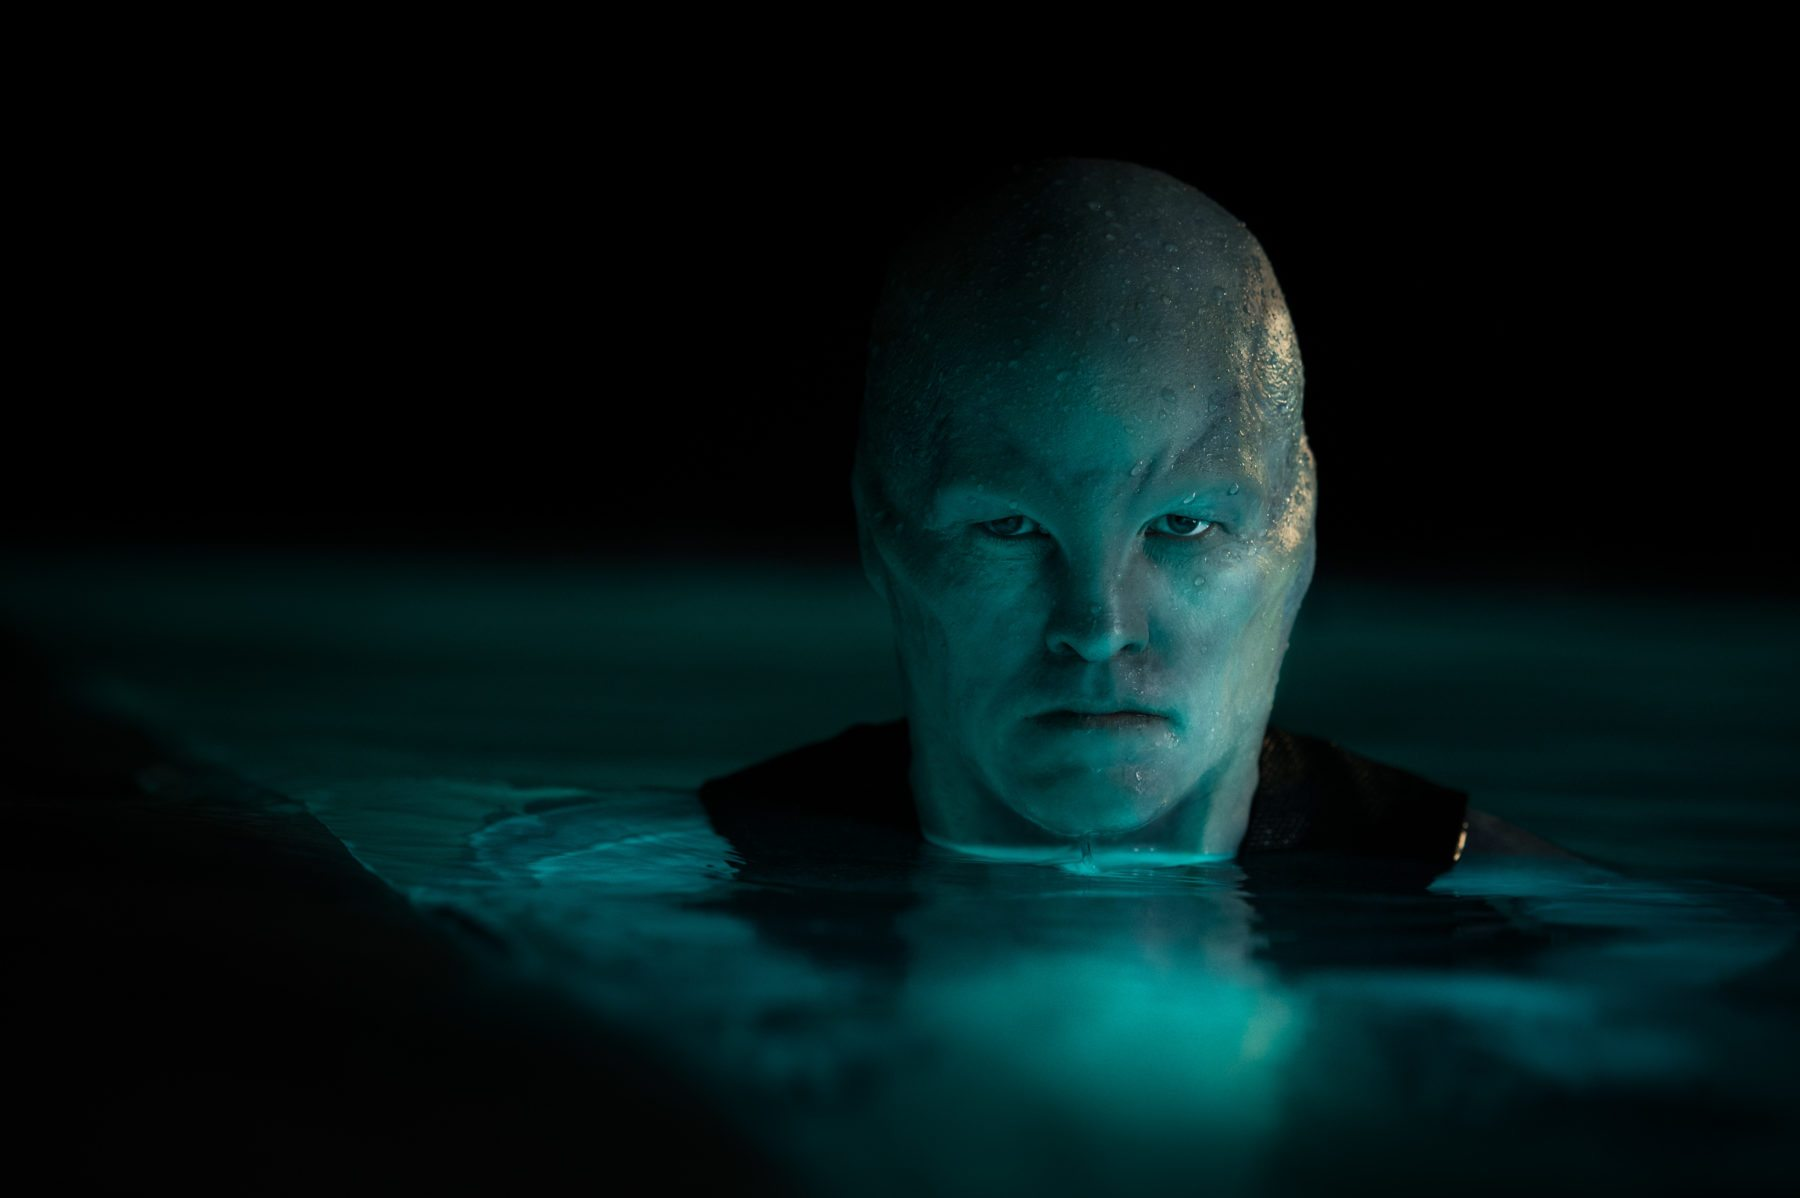 New trailer and images for sci-fi thriller The Titan ...